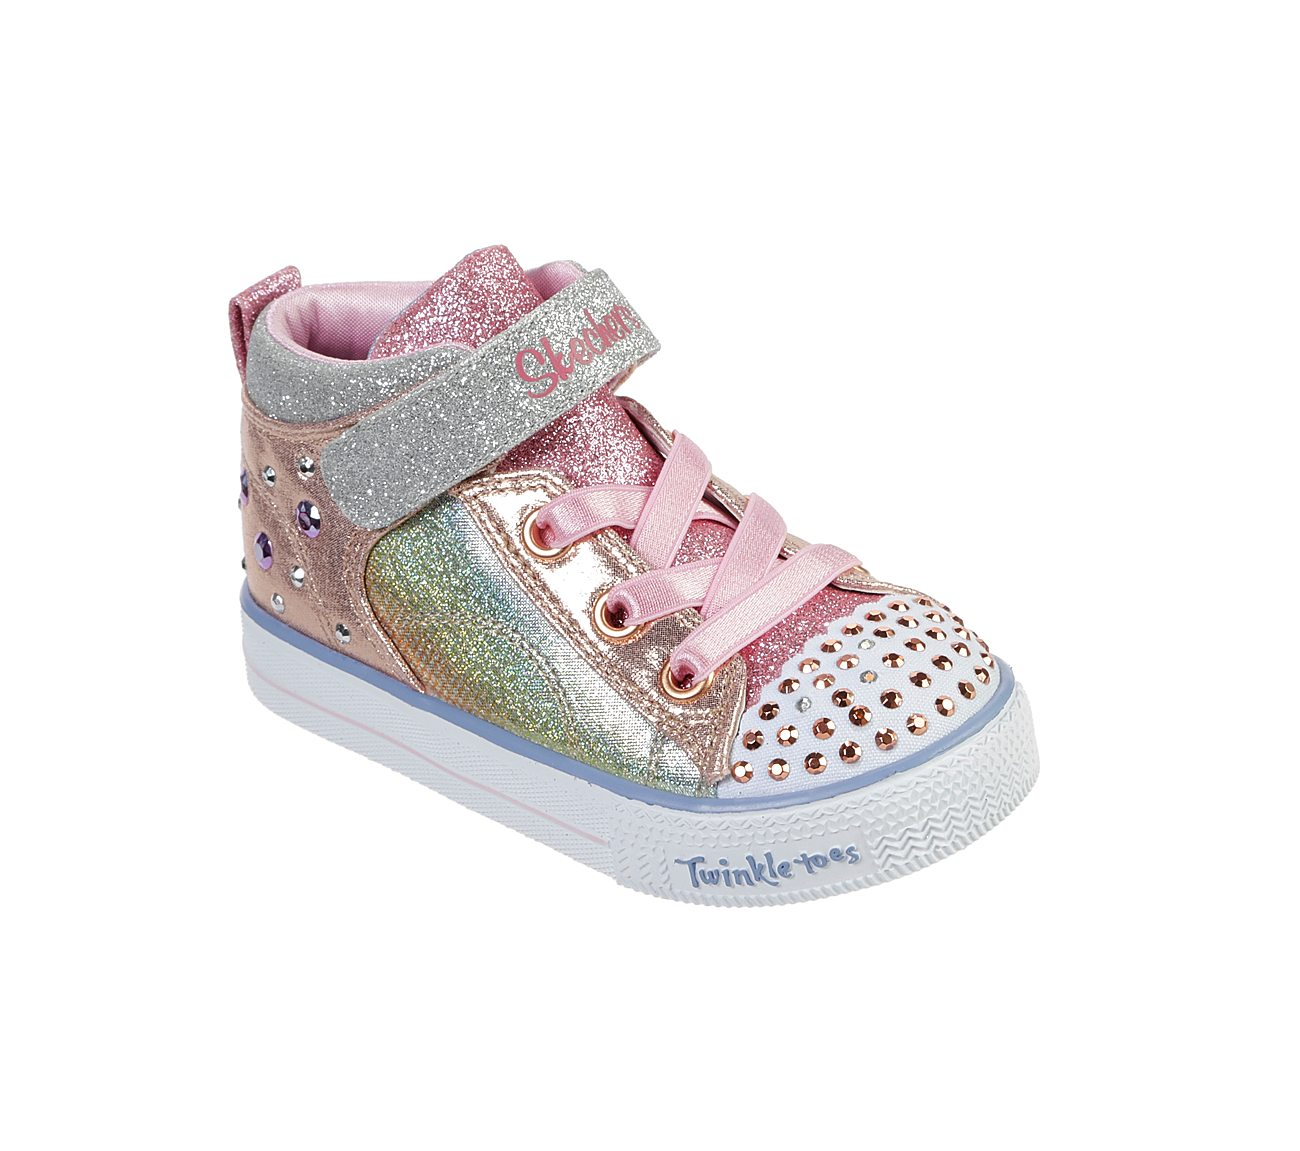 Twinkle Toes: Shuffle Lite Lil Sparkle Gem